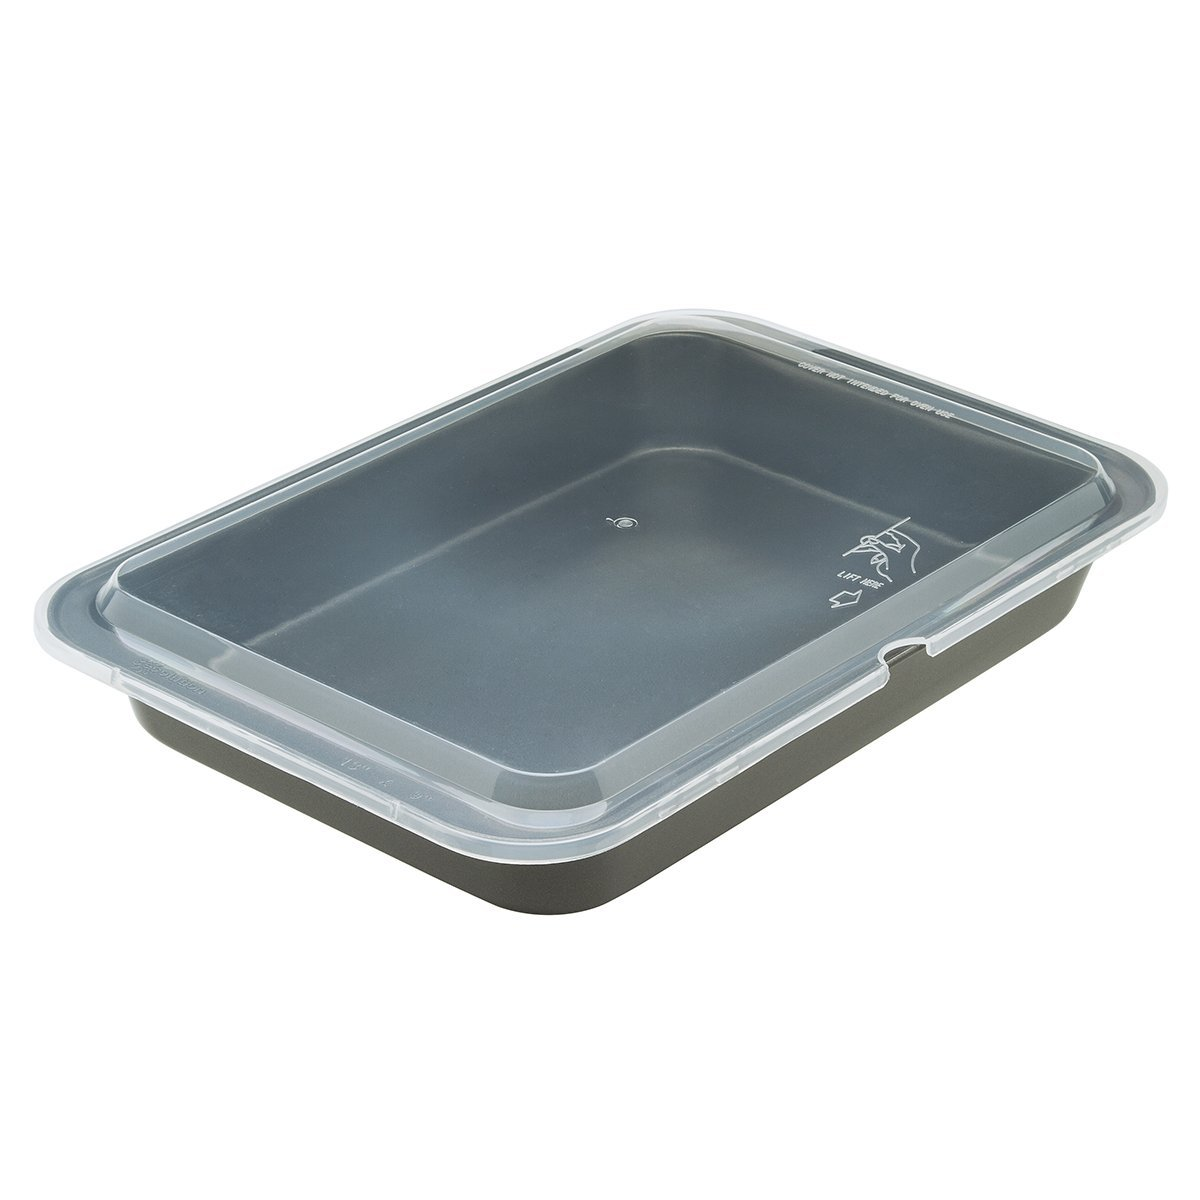 """Ecolution Bakeins Cake Pan with Lid – PFOA, BPA, and PTFE Free Non-Stick Coating – Heavy Duty Carbon Steel – Dishwasher Safe – Gray – 13"""" x 9"""" x 1.875"""" (Without Lid)"""